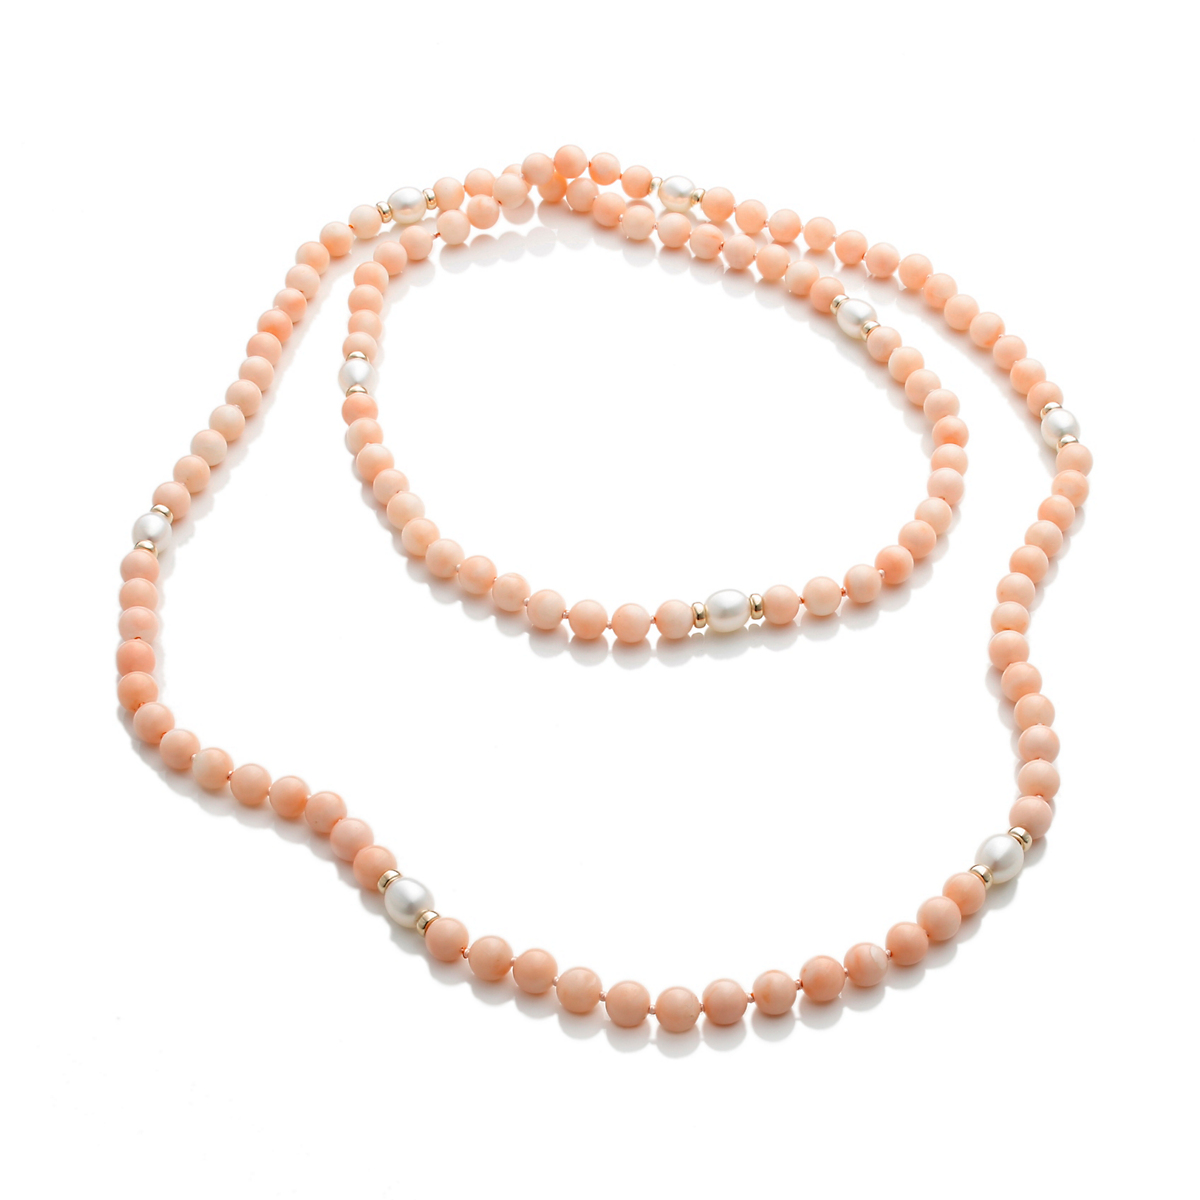 Gump's Pink Coral Rope Necklace With Freshwater Cultured Pearls